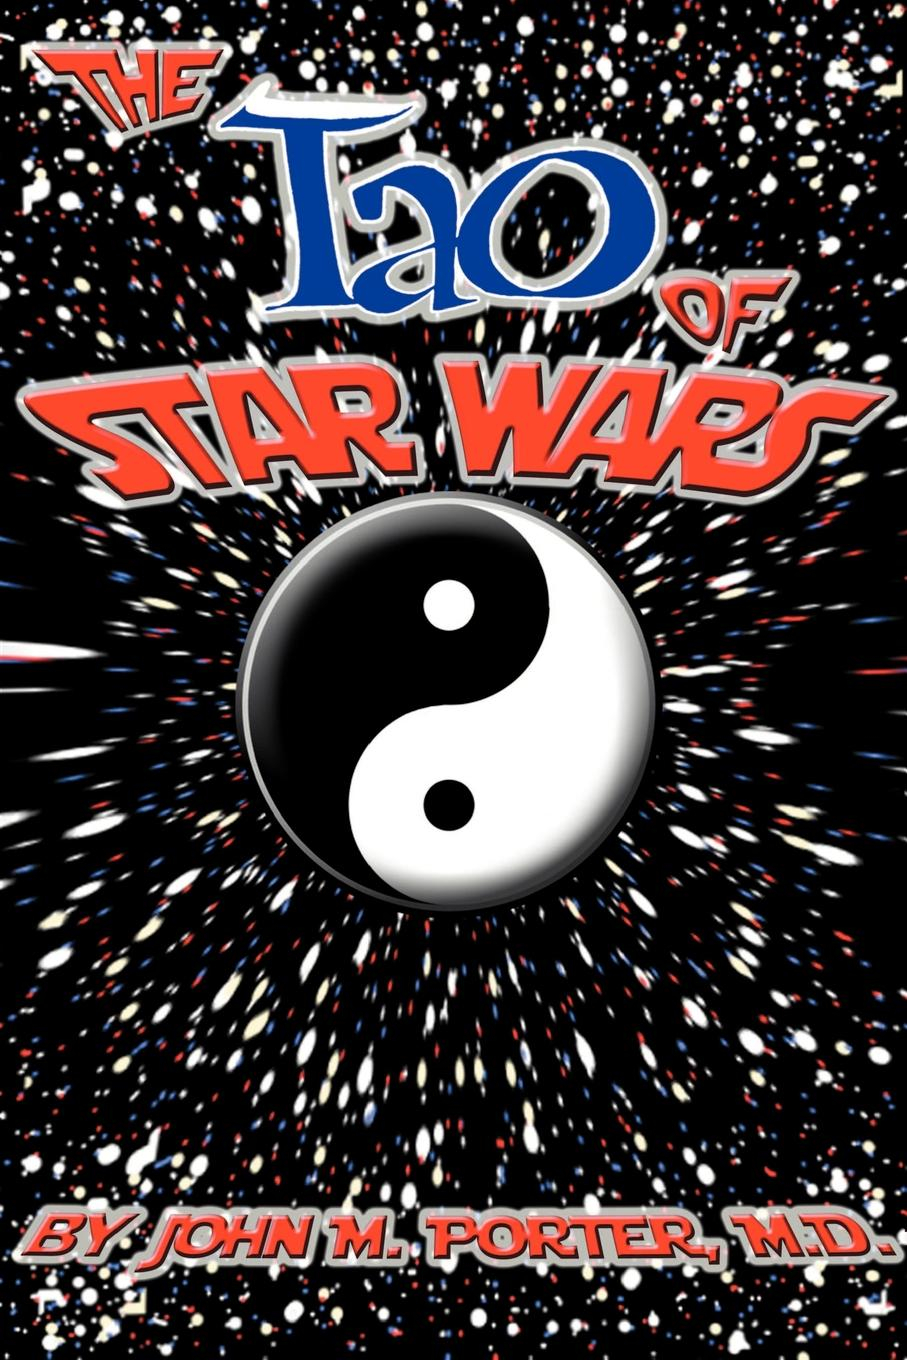 The Tao of Star Wars By: John M. Porter,MD